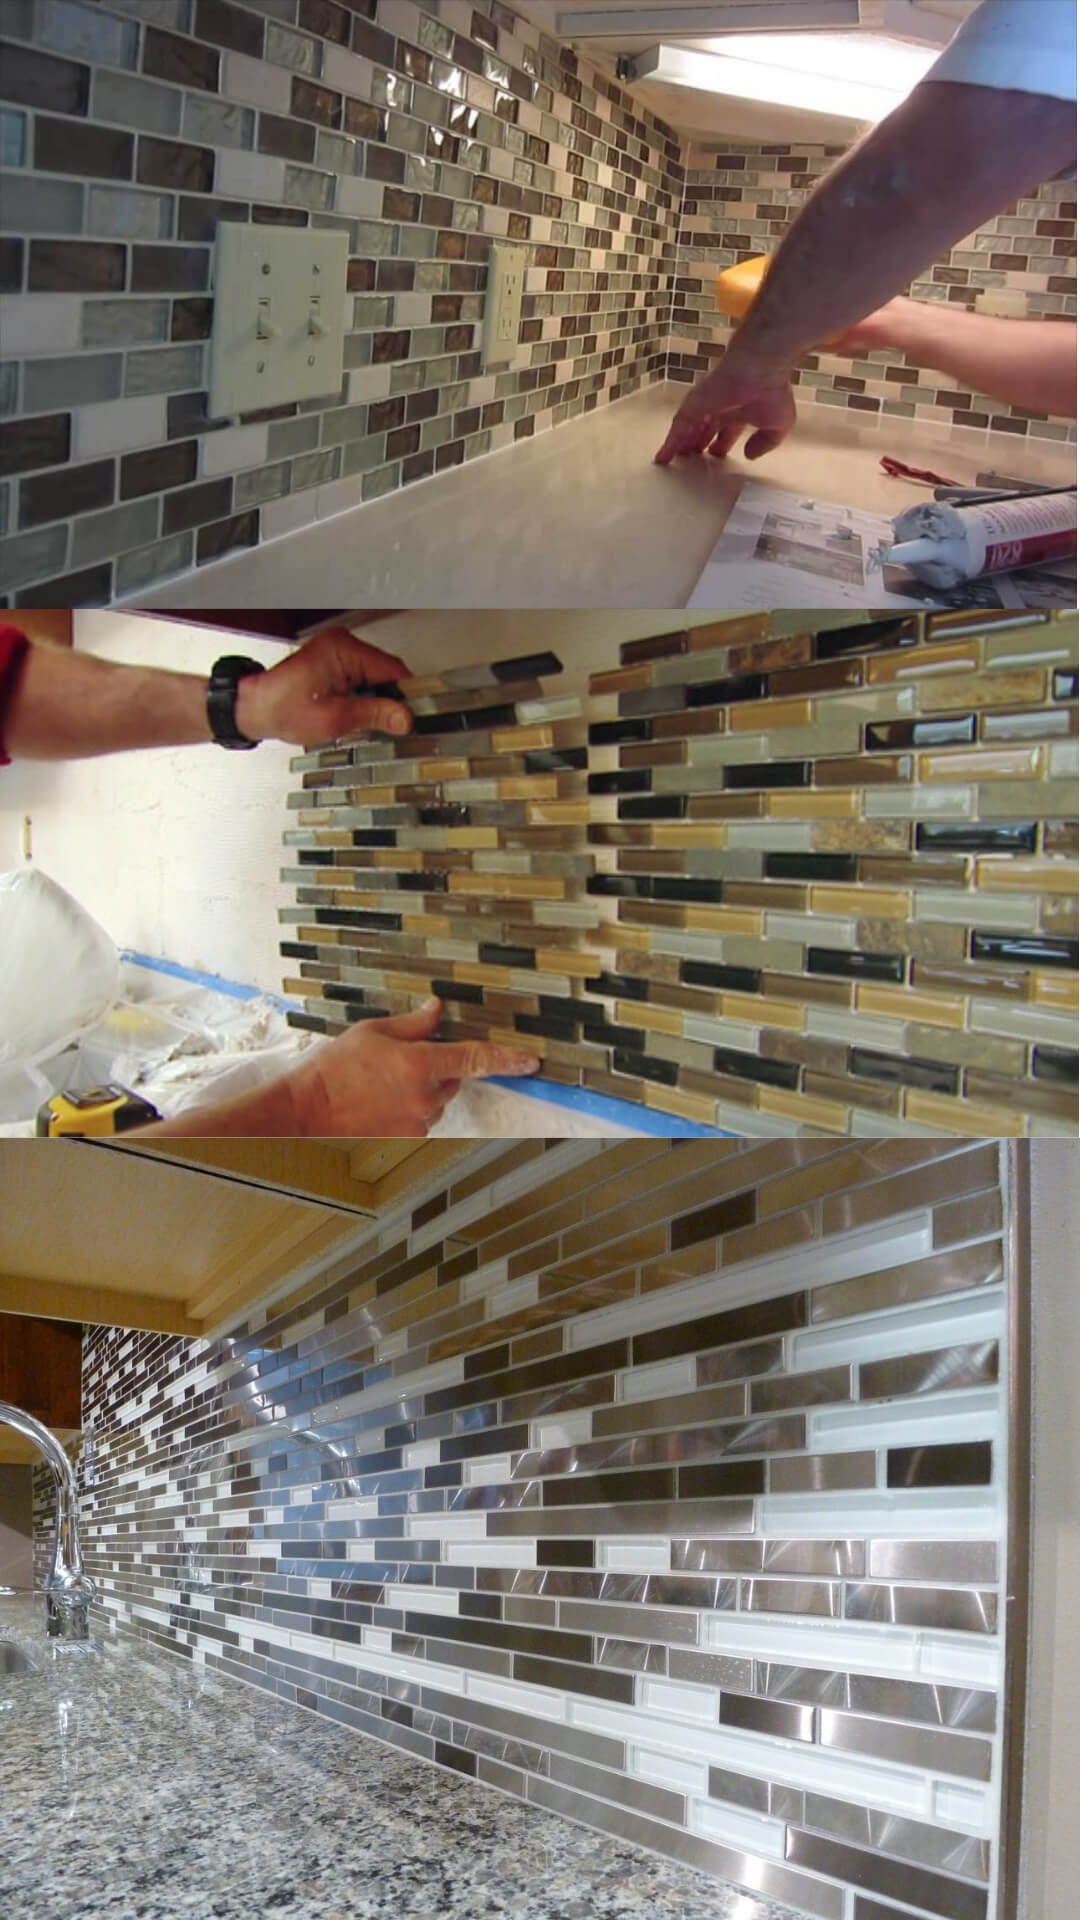 Laying the Tile for a Kitchen Backsplash | Creating a Ceramic Tile Mosaic for a Kitchen Backsplash